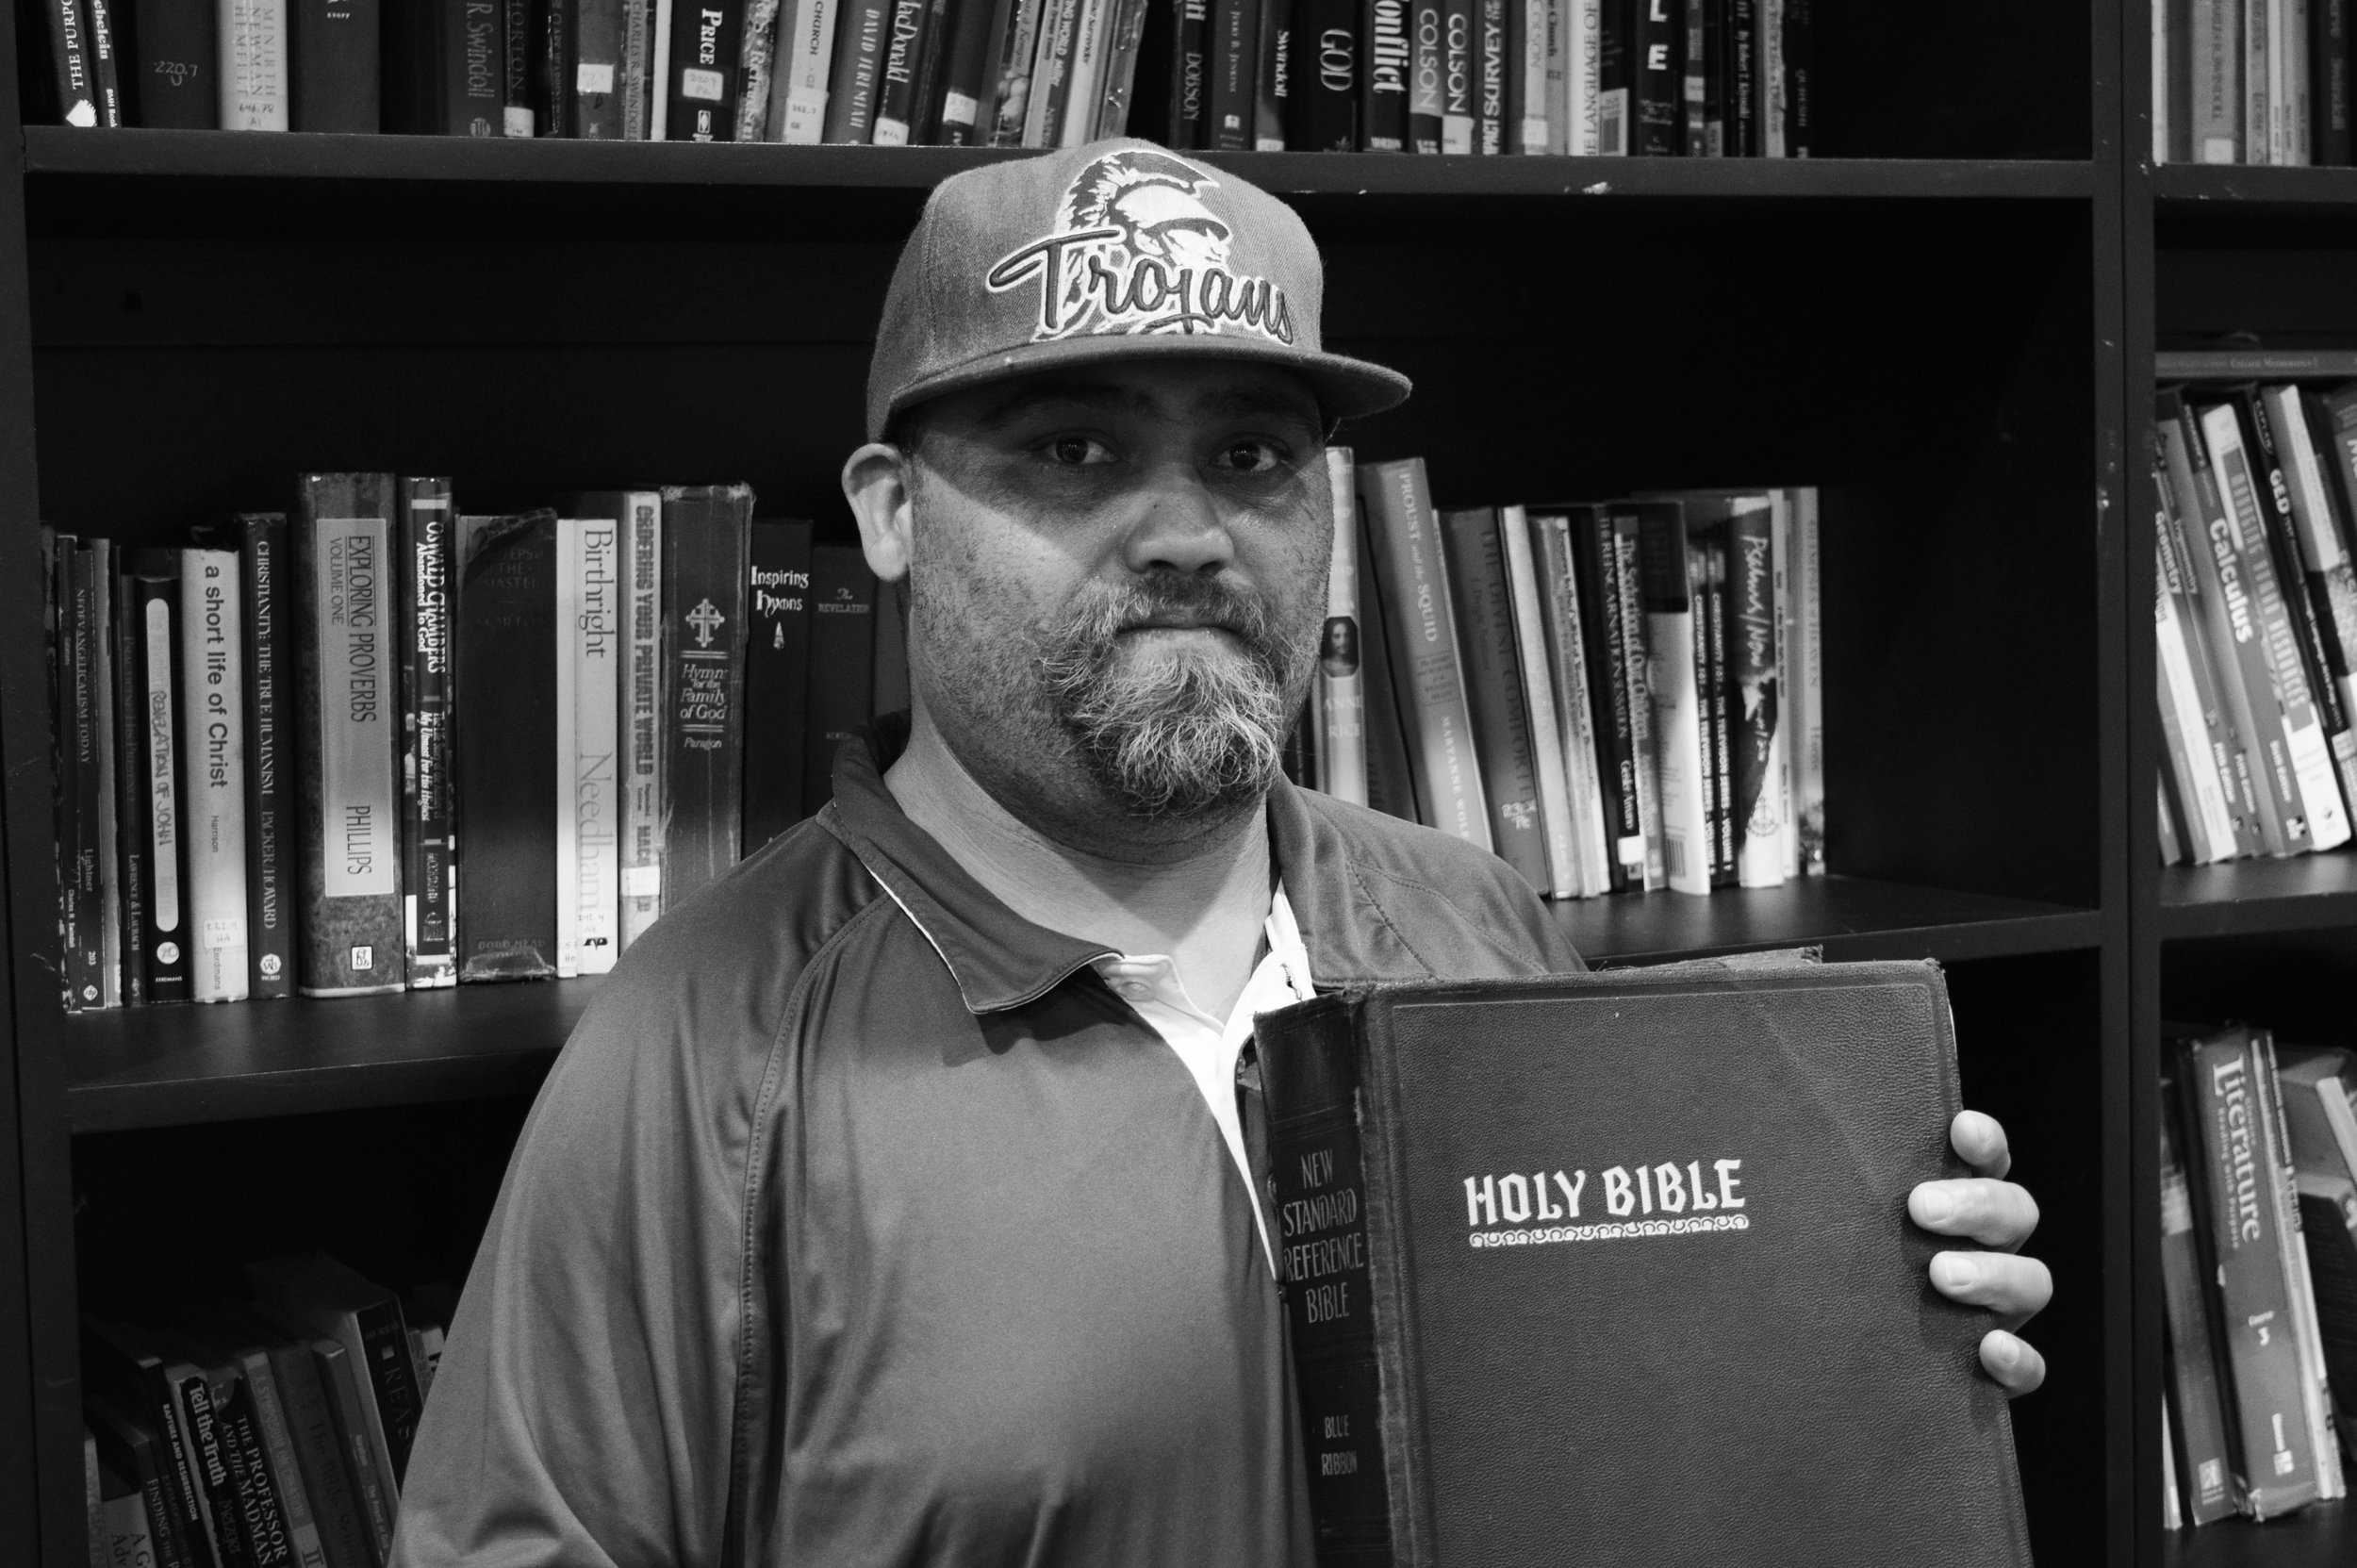 Velton explains that at the Long Beach Rescue Mission, they study the Bible everyday. He expresses how important God is in his life and in his healing process.